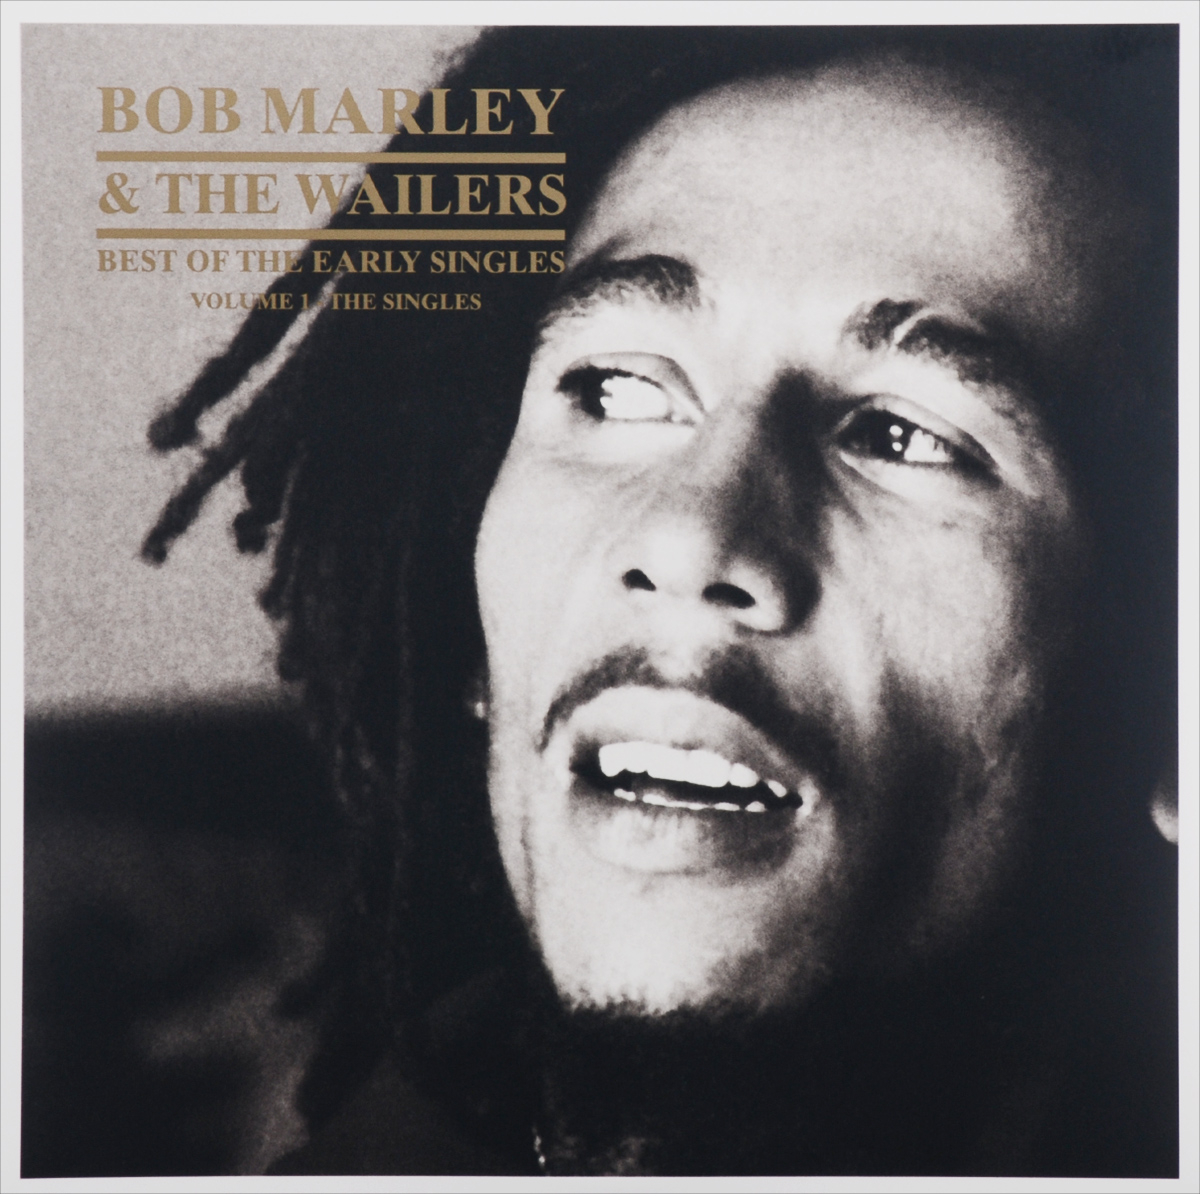 Боб Марли,The Wailers Bob Marley & The Wailers. Best Of The Early Singles. Volume 1 - The Singles (2 LP) philips brl130 satinshave advanced wet and dry electric shaver